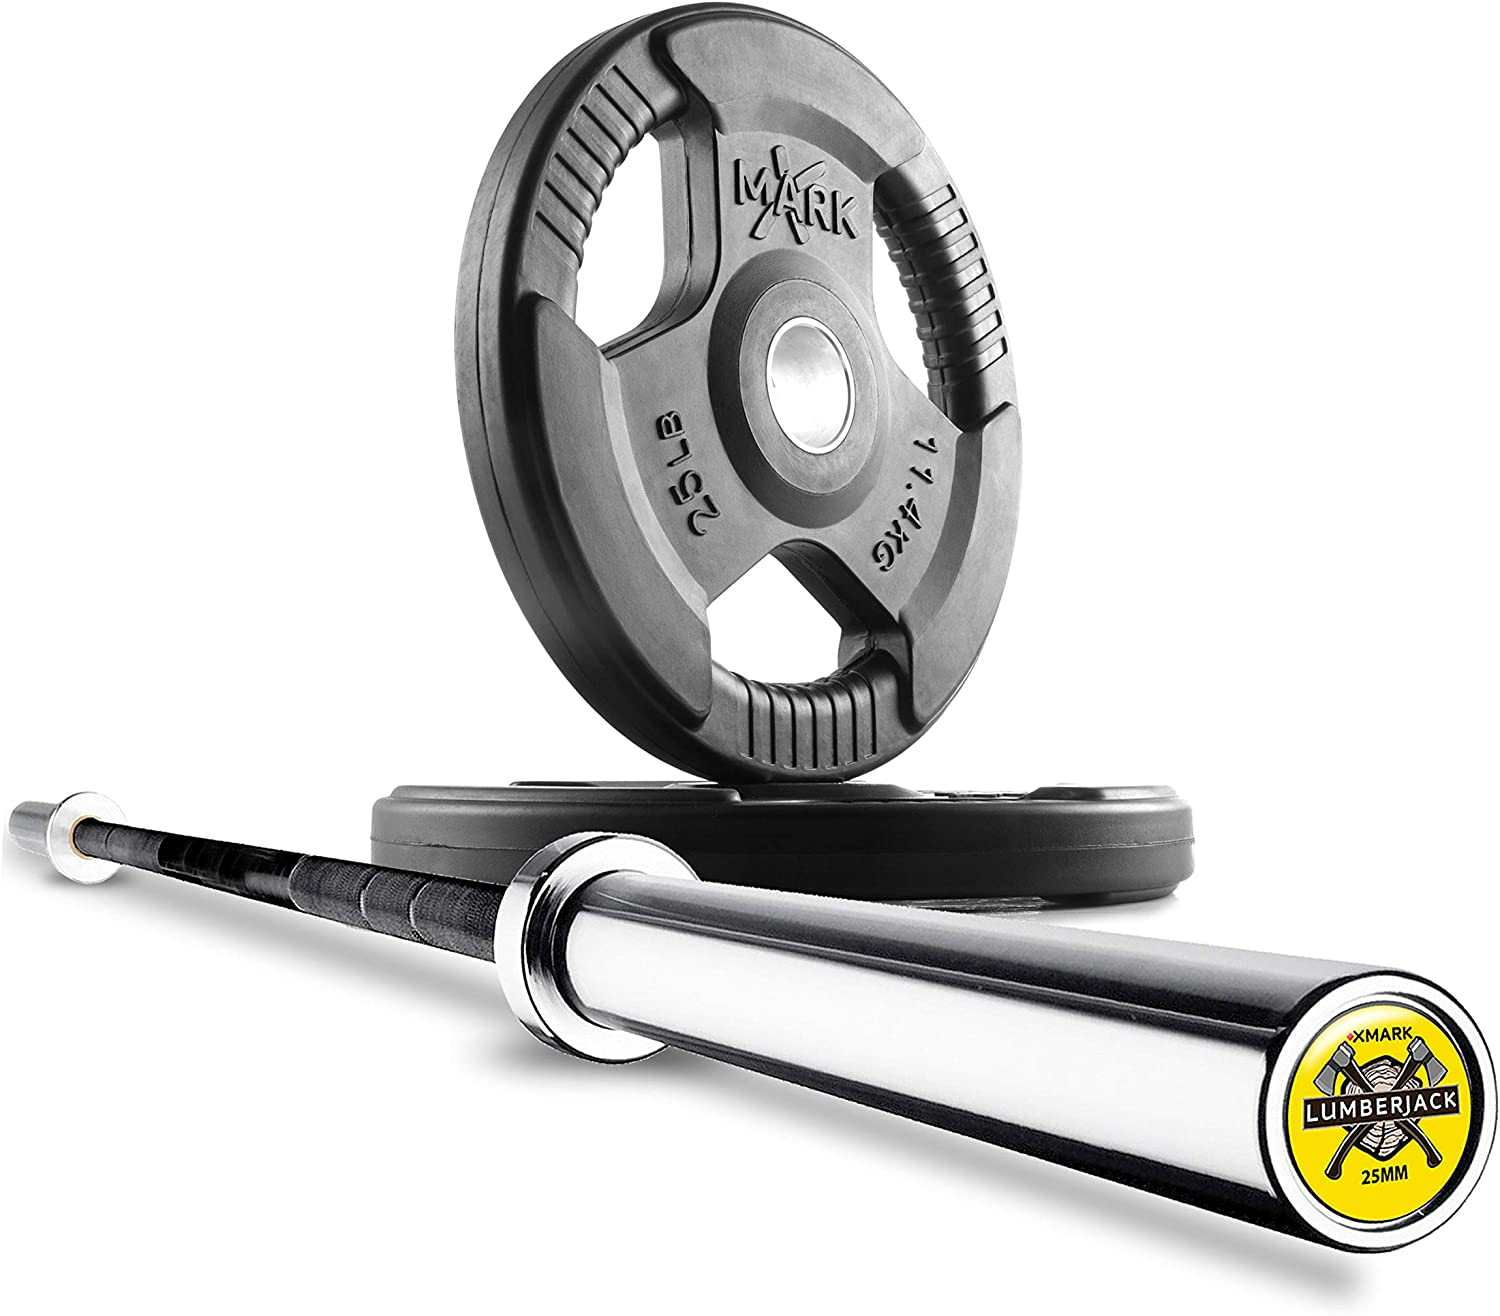 XMark Olympic Bar with Weights Offer, Olympic Weights Pair or Set of TRI-Grip Olympic Weight Plates, Premium Quality, Rubber Coated XM-3377 with Olympic Barbell, 7 ft with 25mm Grip LUMBERJACK-25MM